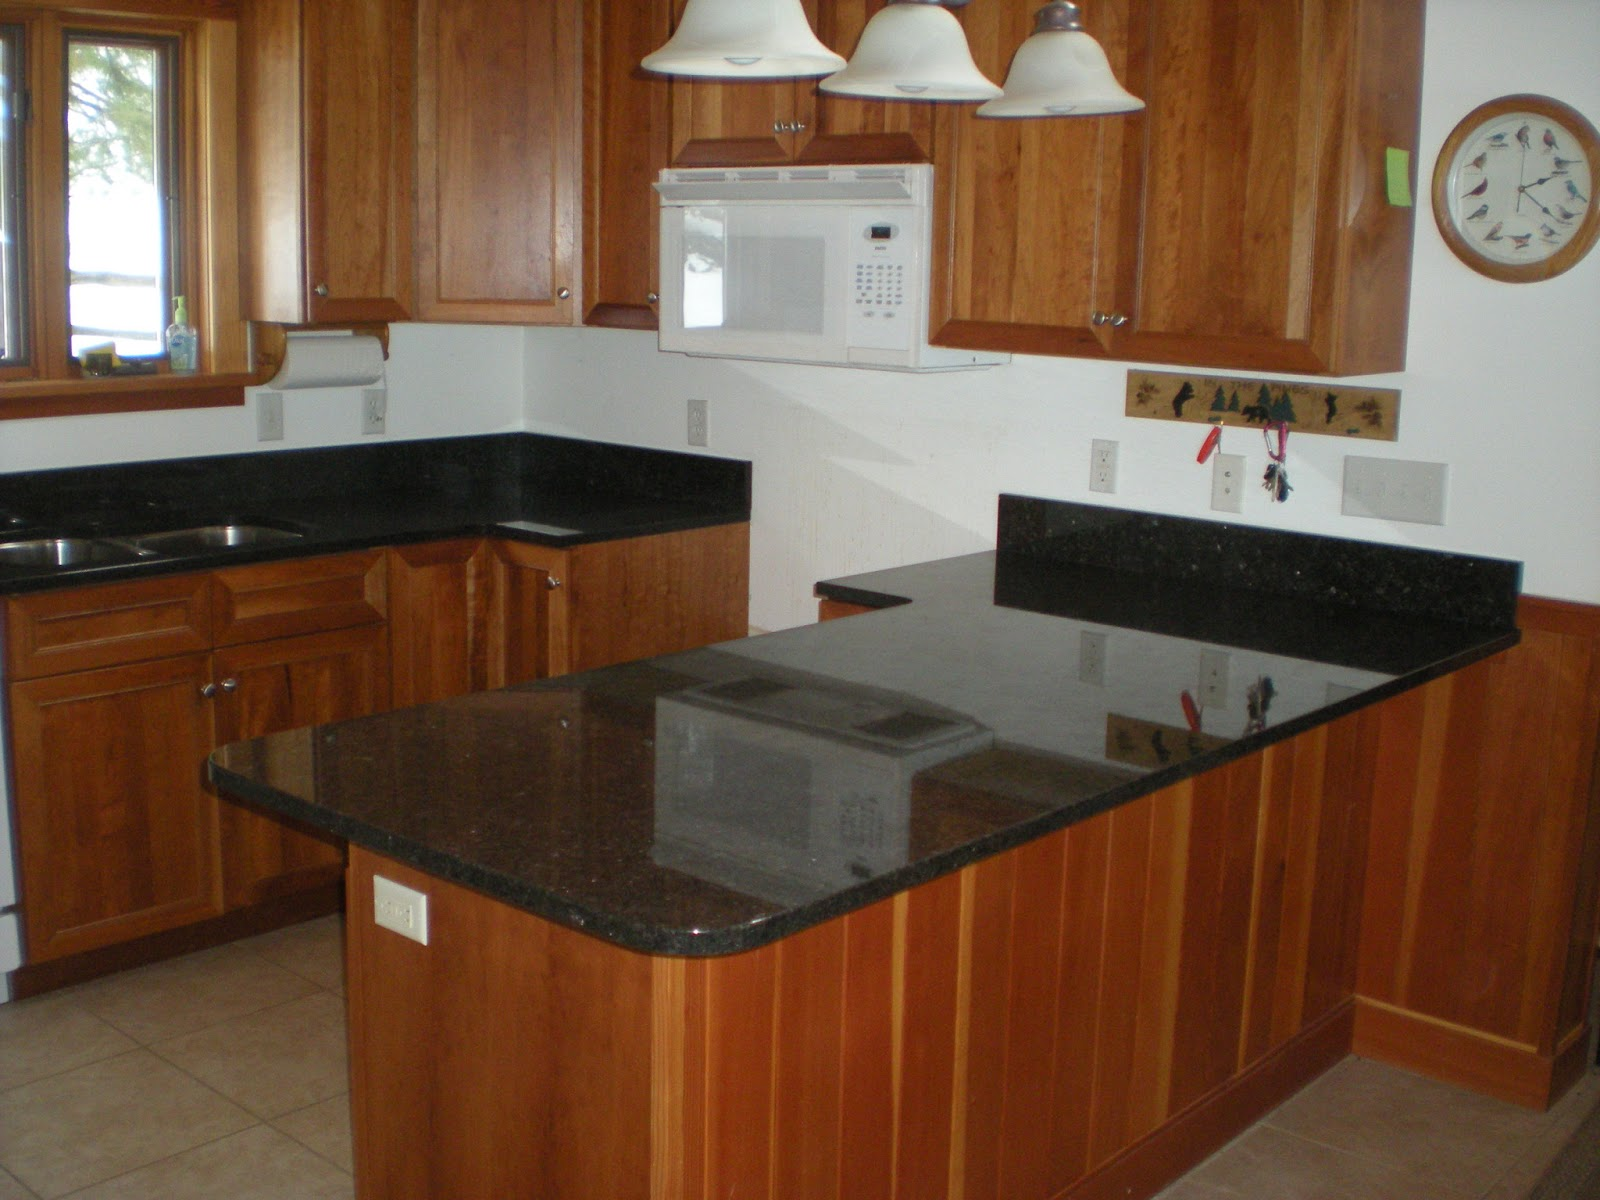 Black White Granite Countertops : granite, black, mesabi, ely minnesota